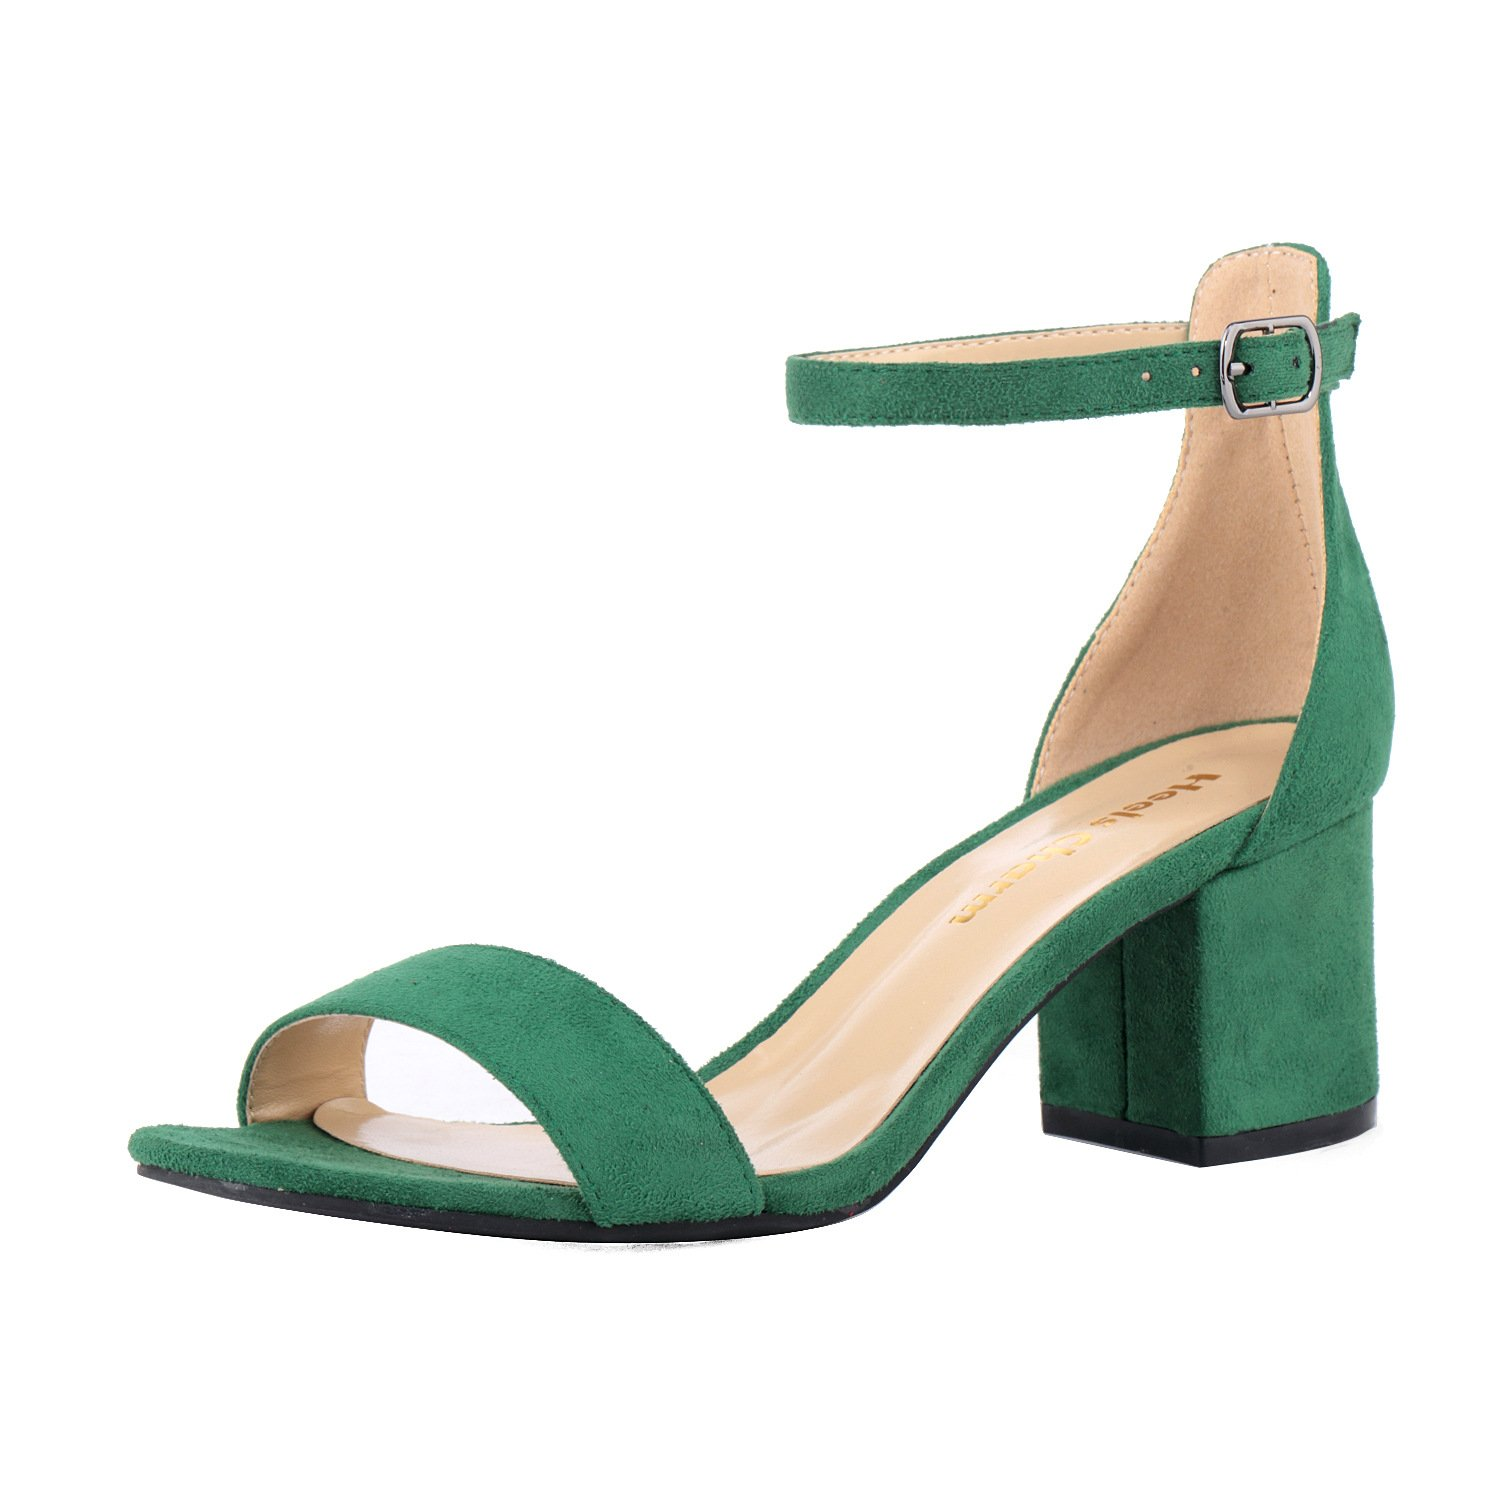 Velvet Green Women's Strappy Chunky Block Low Heeled Sandals 2 Inch Open Toe Ankle Strap High Heel Dress Sandals Daily Work Party shoes